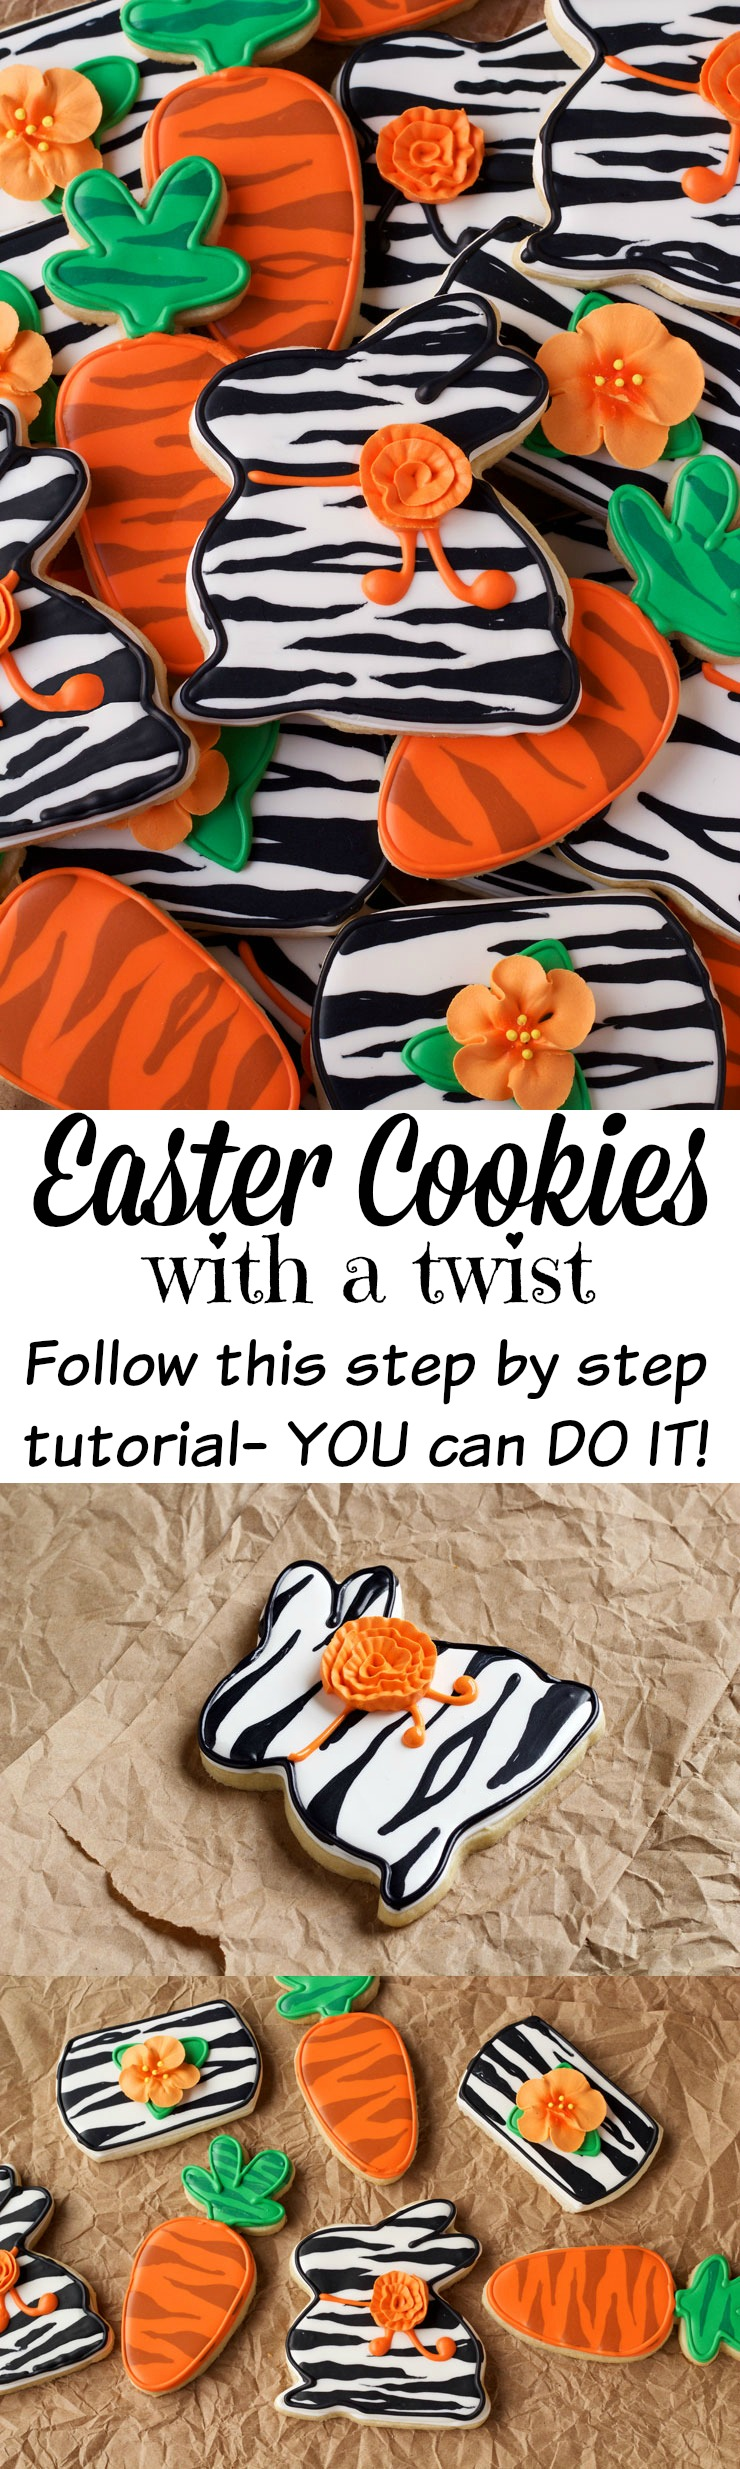 Easter cookies with a twist the bearfoot baker easter cookies with a twist sugar cookies decorated with royal icing thebearfootbaker nvjuhfo Choice Image